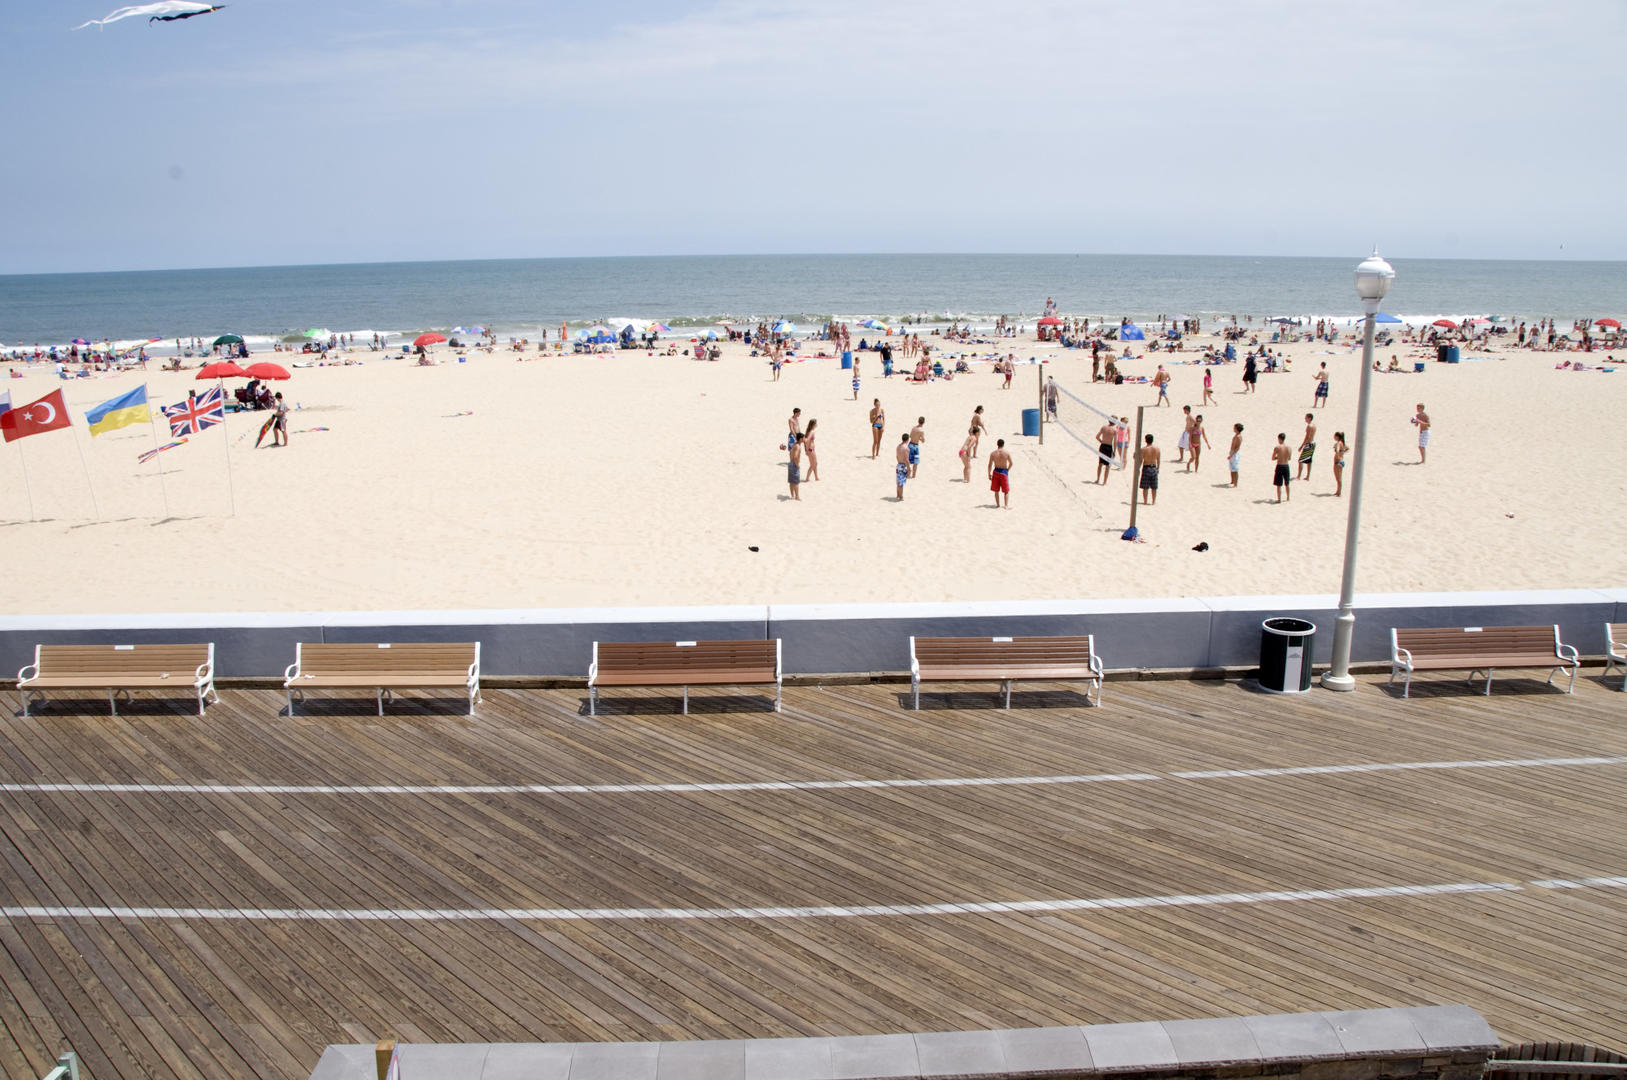 OC Boardwalk Suites - View of Beach and Boardwalk